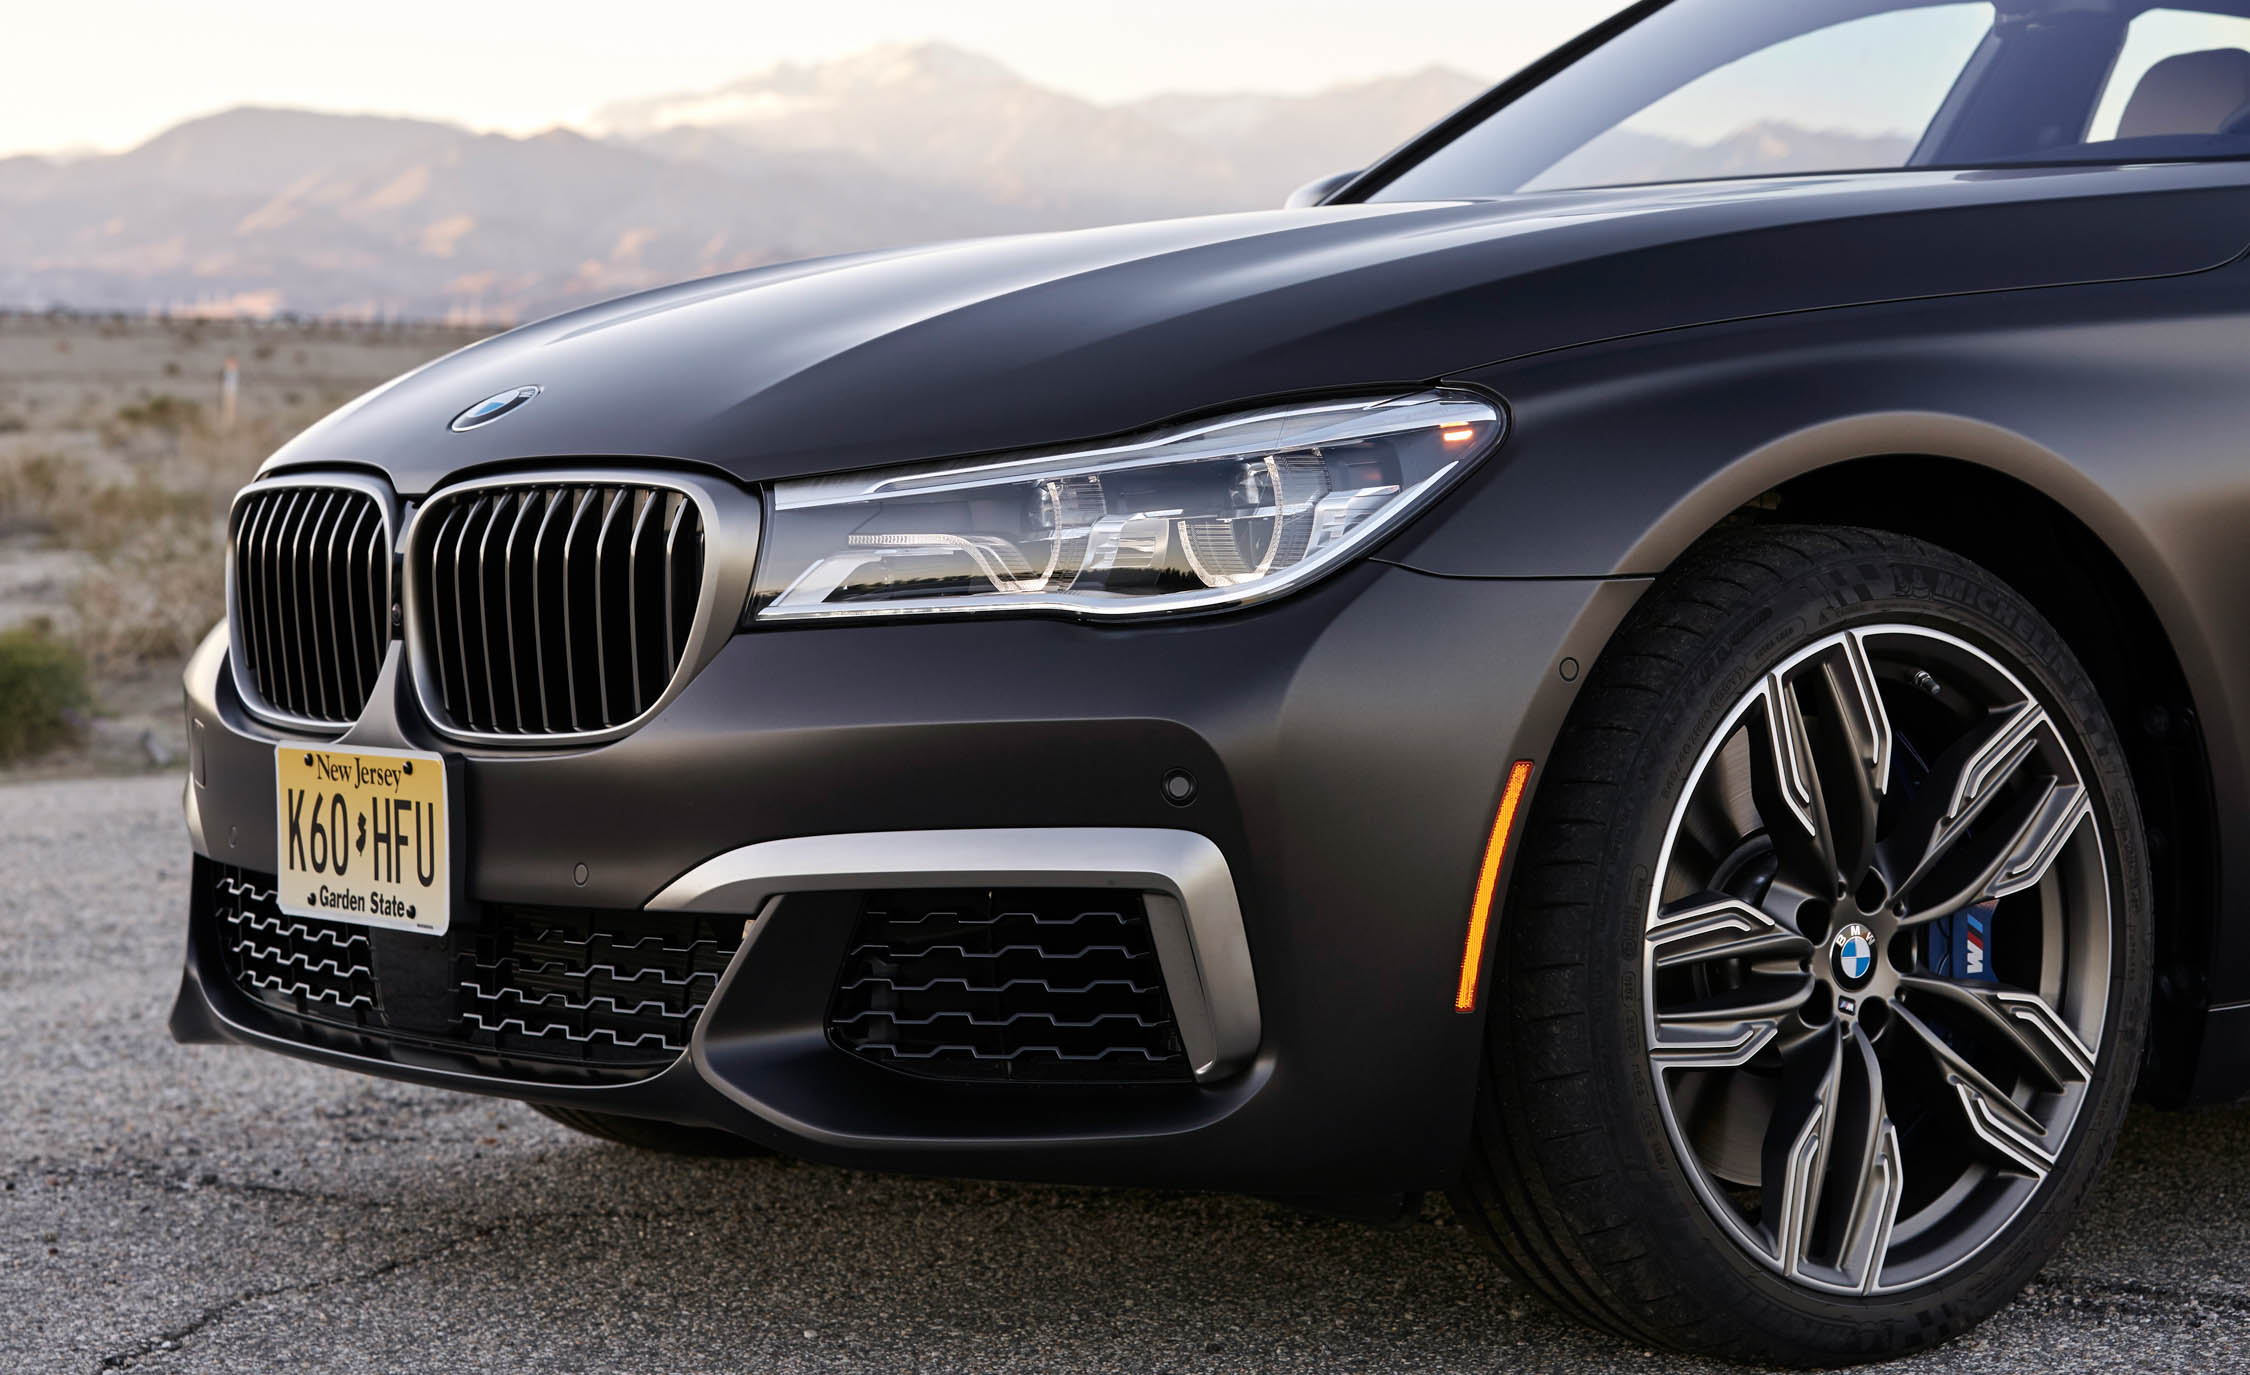 2017 BMW M760i XDrive Exterior View Grille And Bumper (Photo 18 of 76)